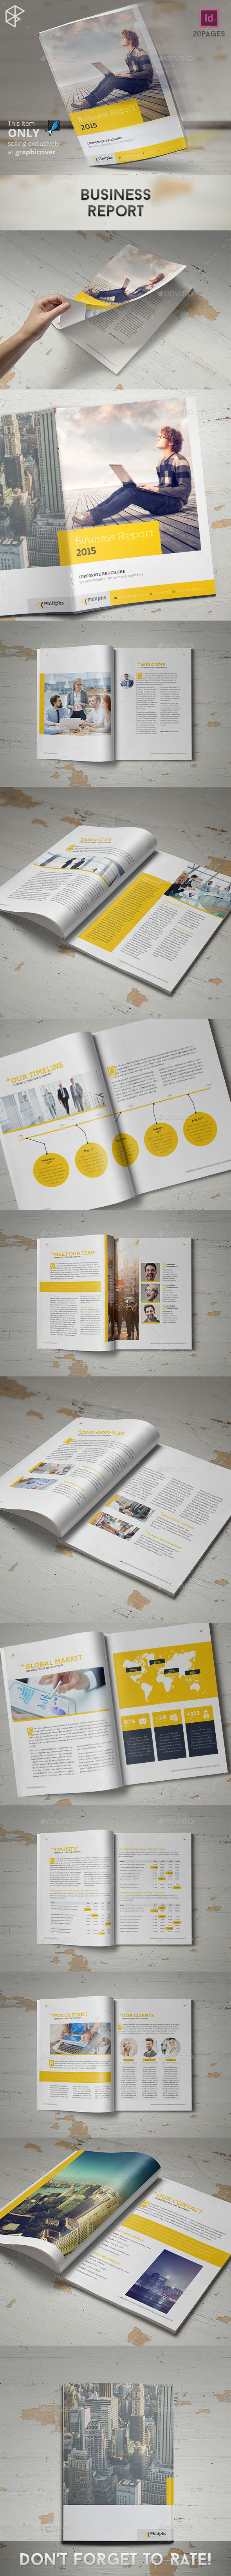 Business Report - Corporate Brochures